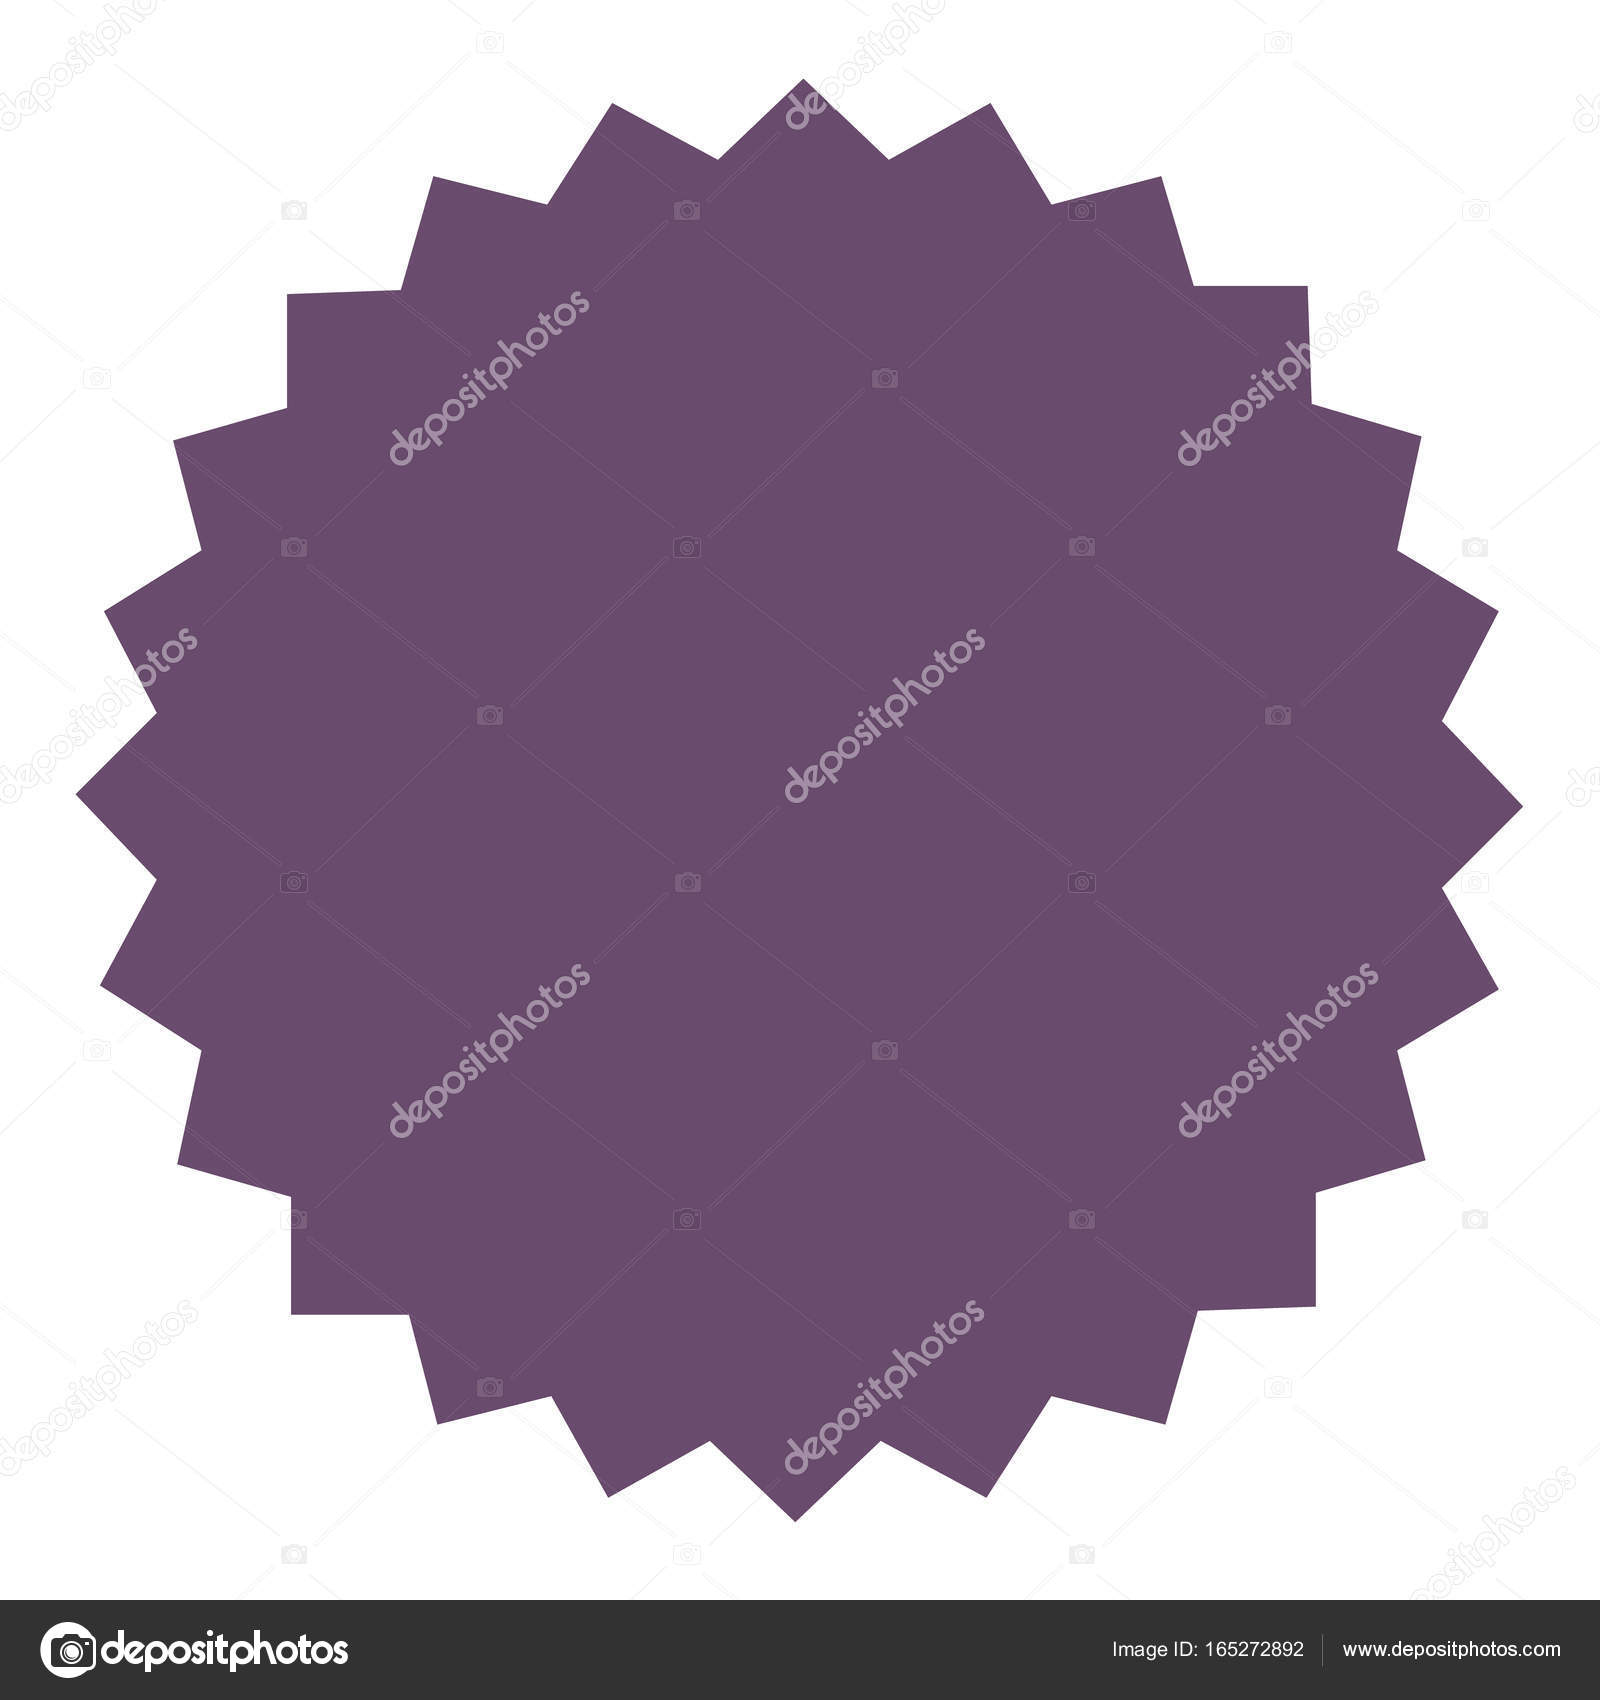 icon of starburst sunburst badge label sticker purple lilac